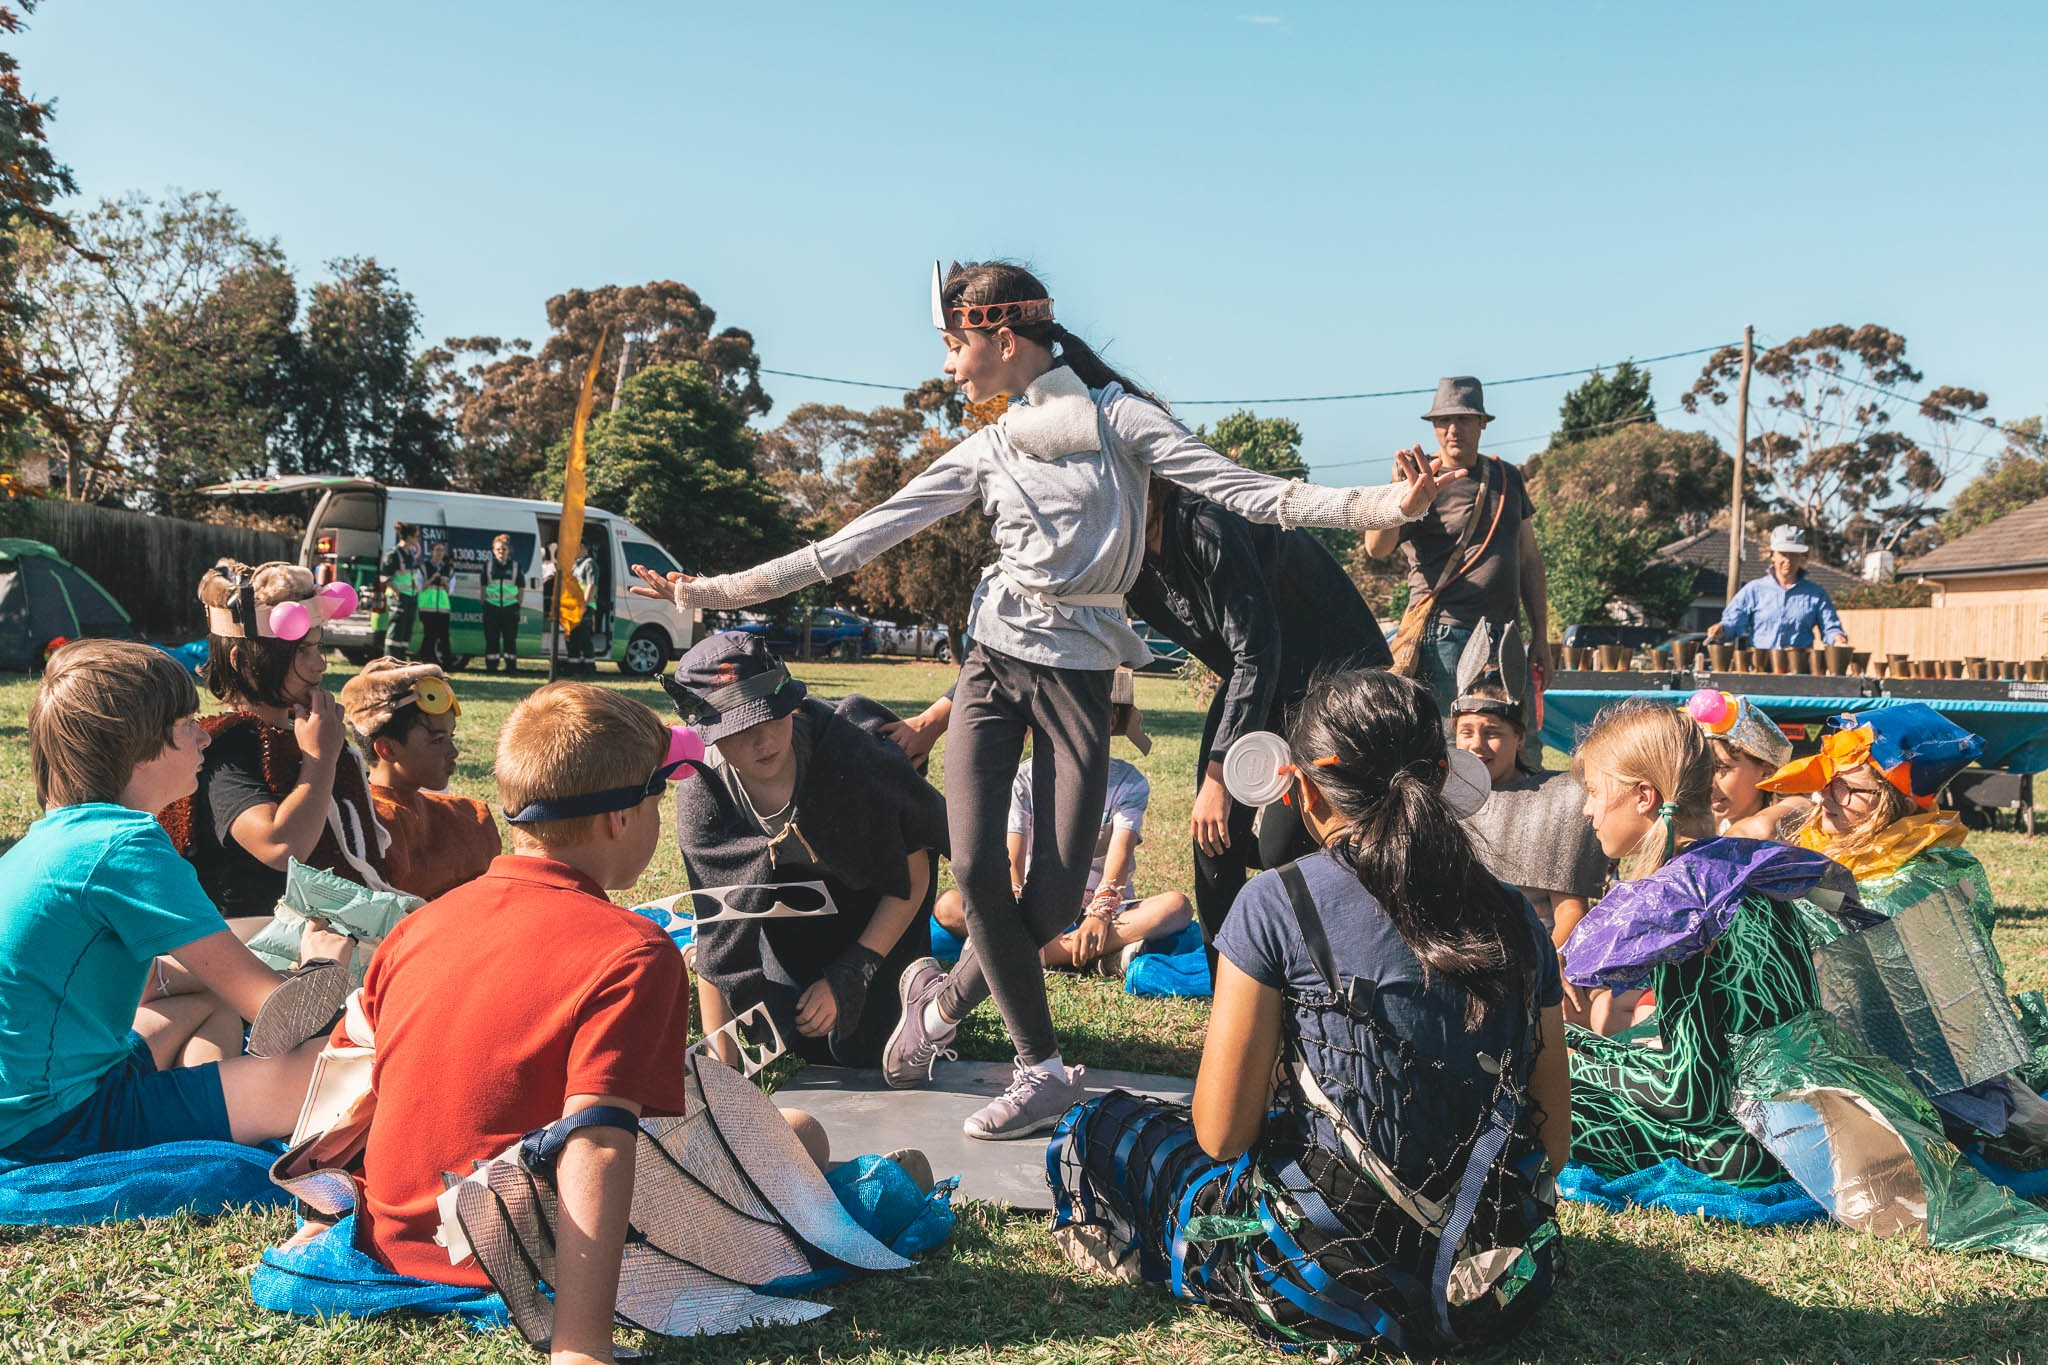 Local school children take part in interpretive dance depicting the history of the waterway and its importance as home for animals